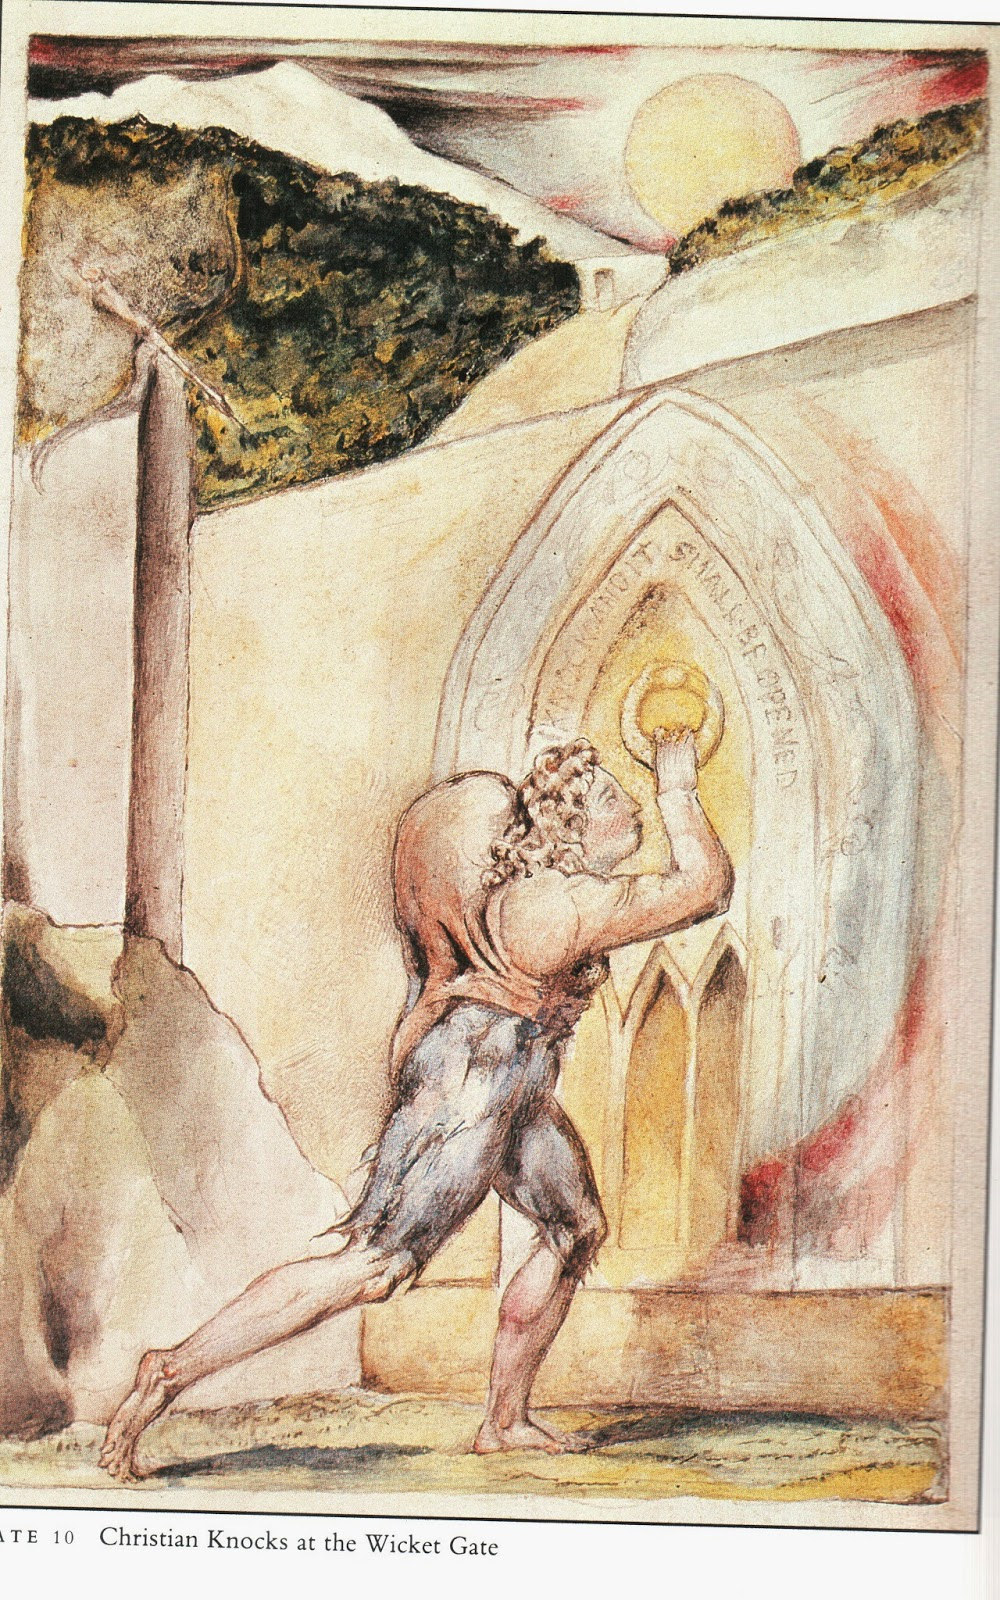 christianity in william blakes works Frontline 6 the revolutionary mysticism of william blake in the second in our series of articles on art and artists, kenny mcewan looks at the work of poet and painter william blake (1757-1827.